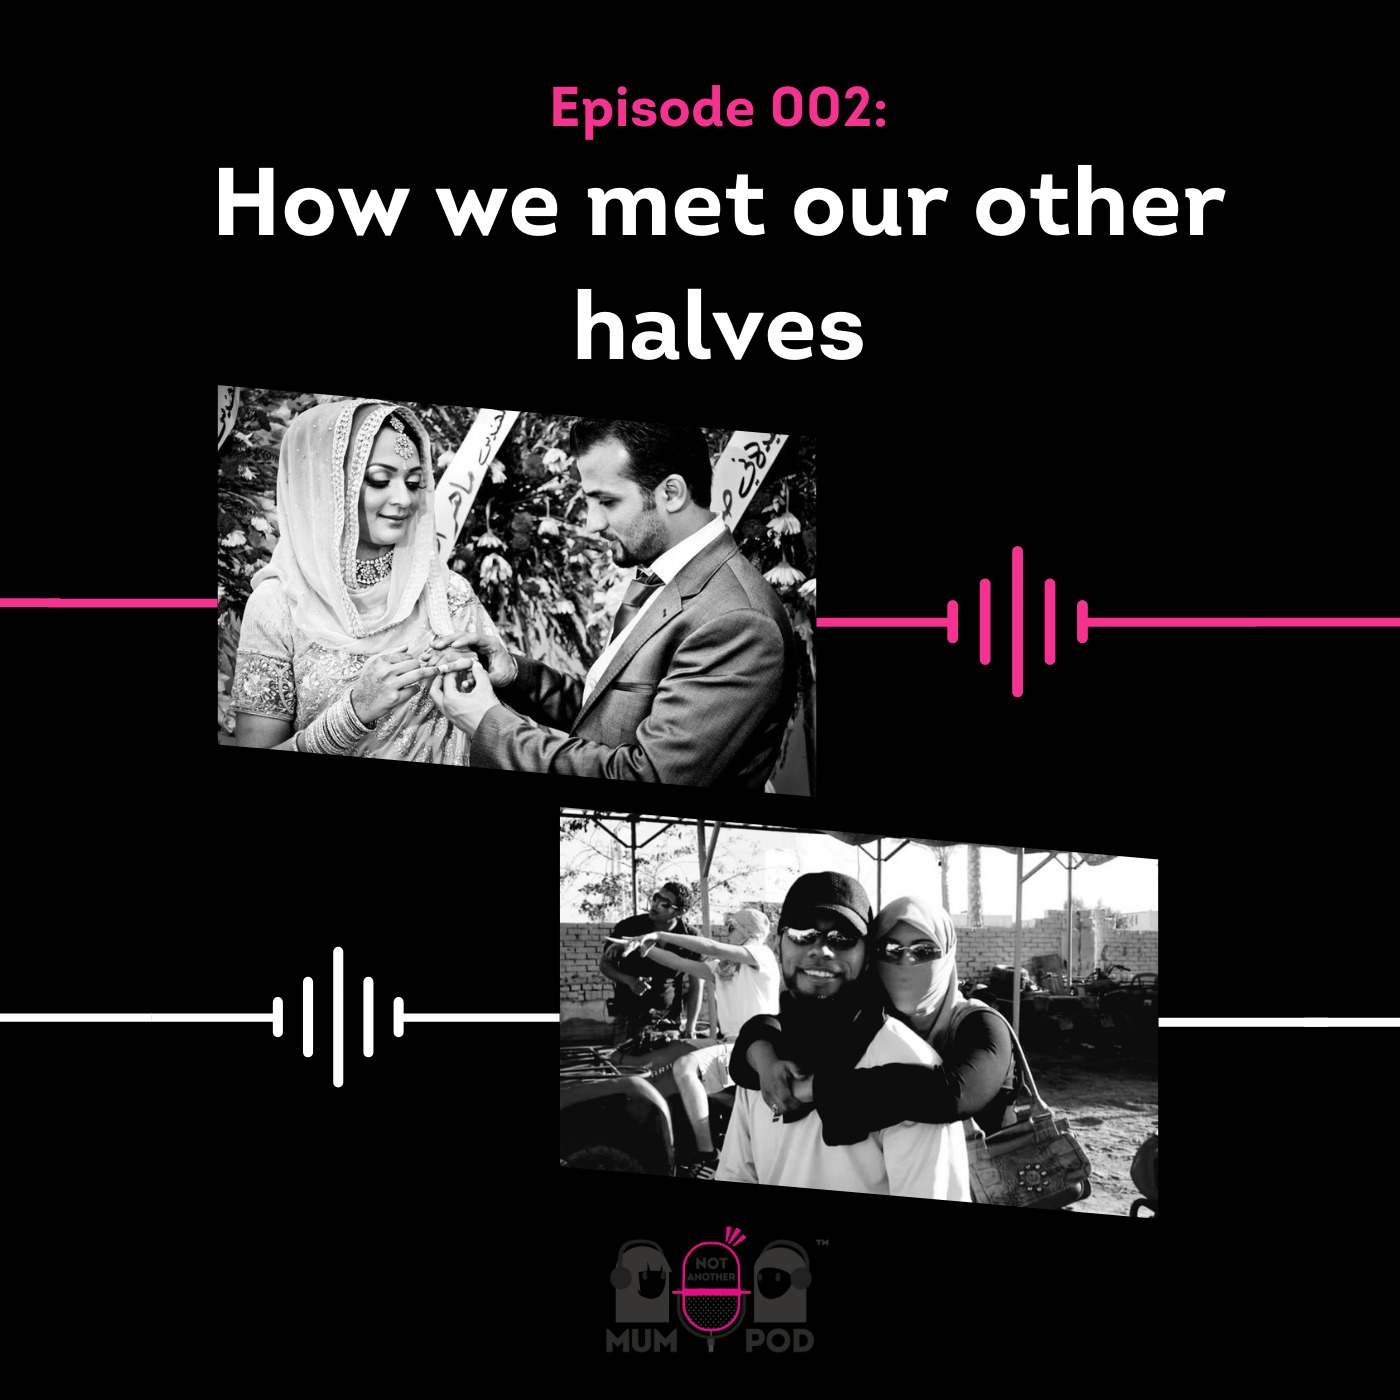 How we met our halves